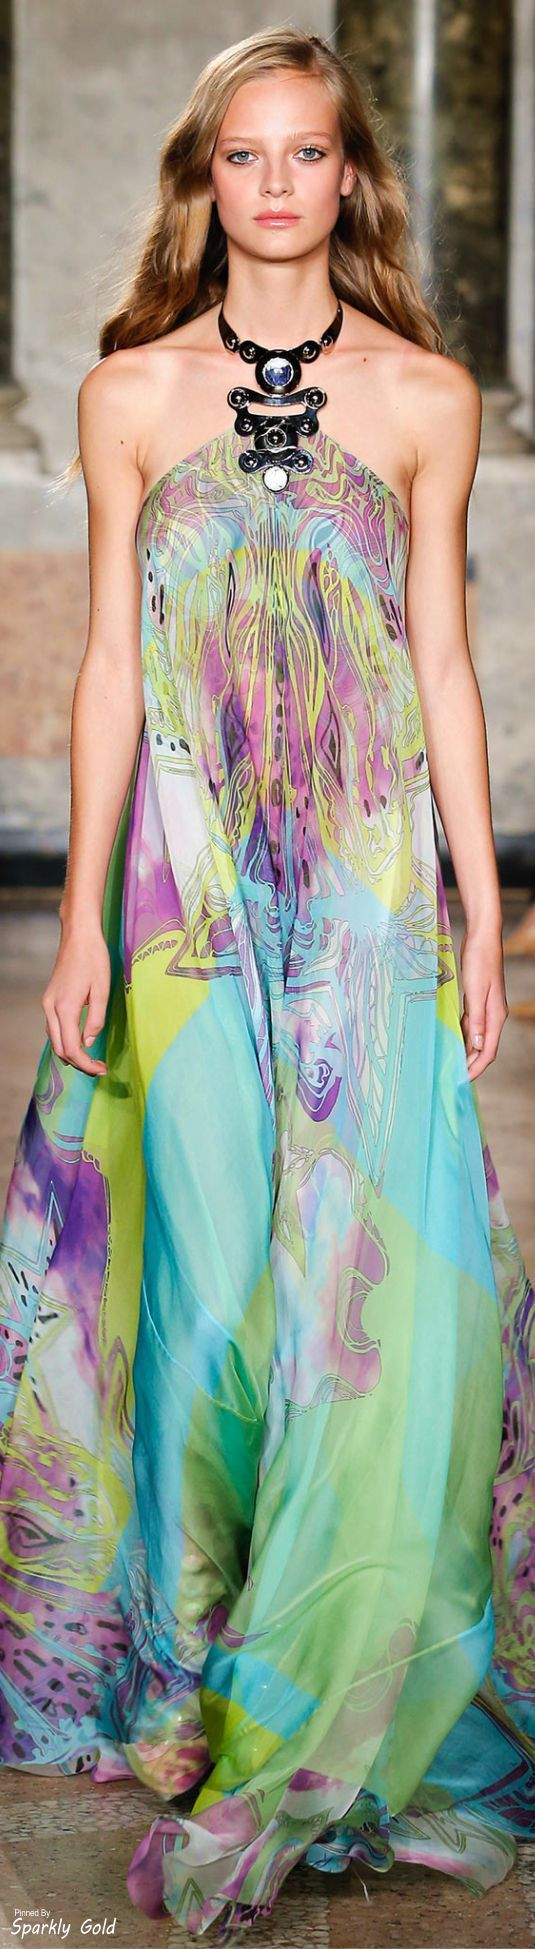 Emilio Pucci Spring 2015 Maxi Dress Pinterest